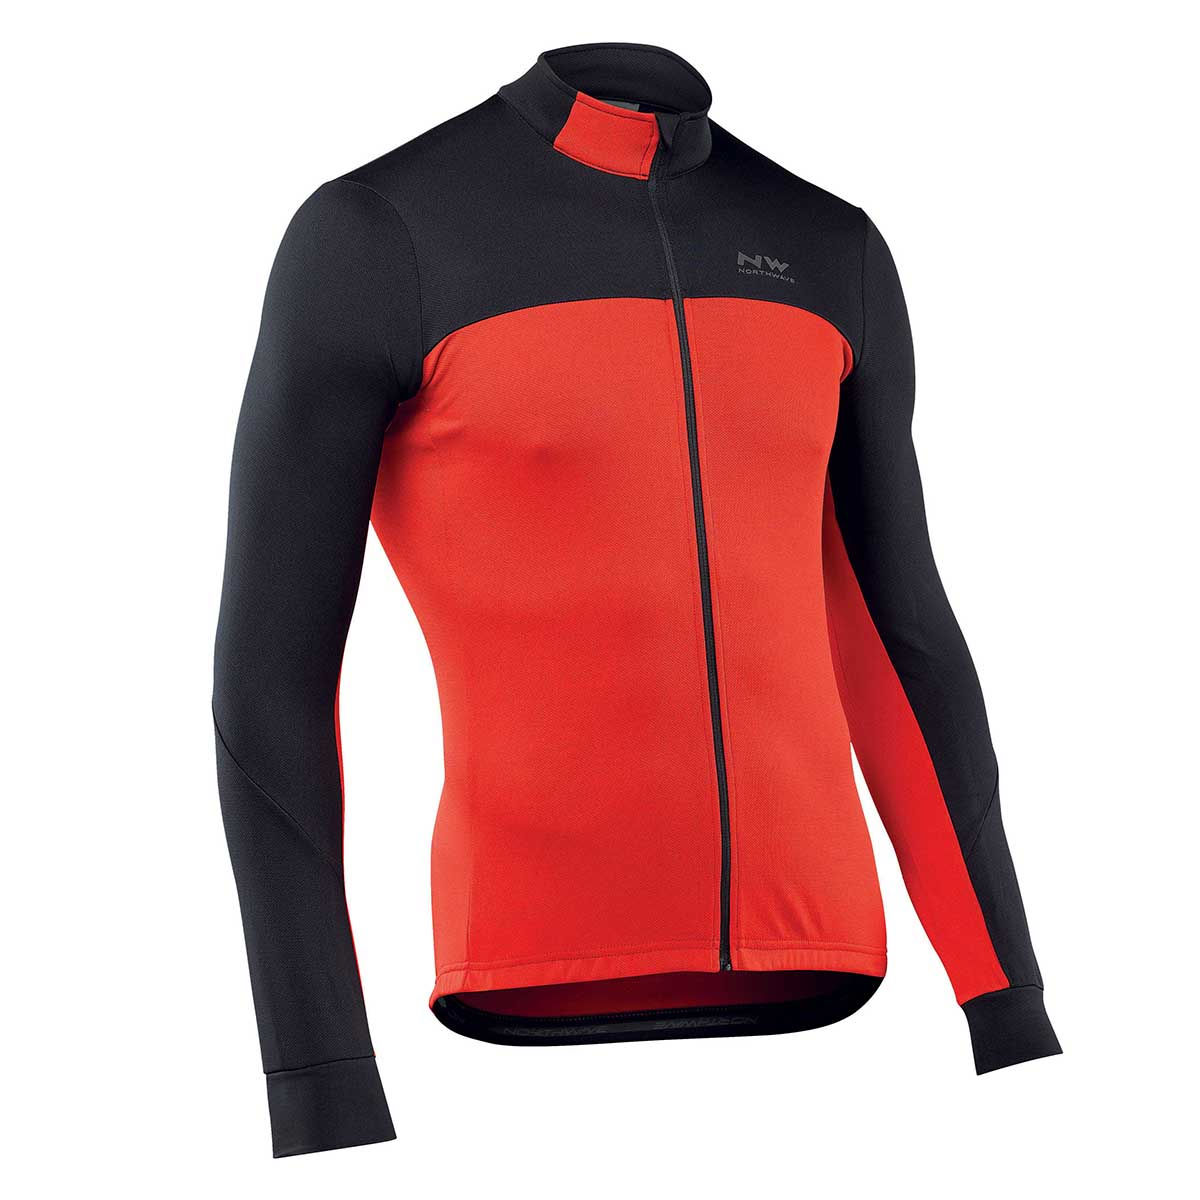 Northwave - Force 2 Long Sleeve Jersey - M Noir/Rouge Maillots